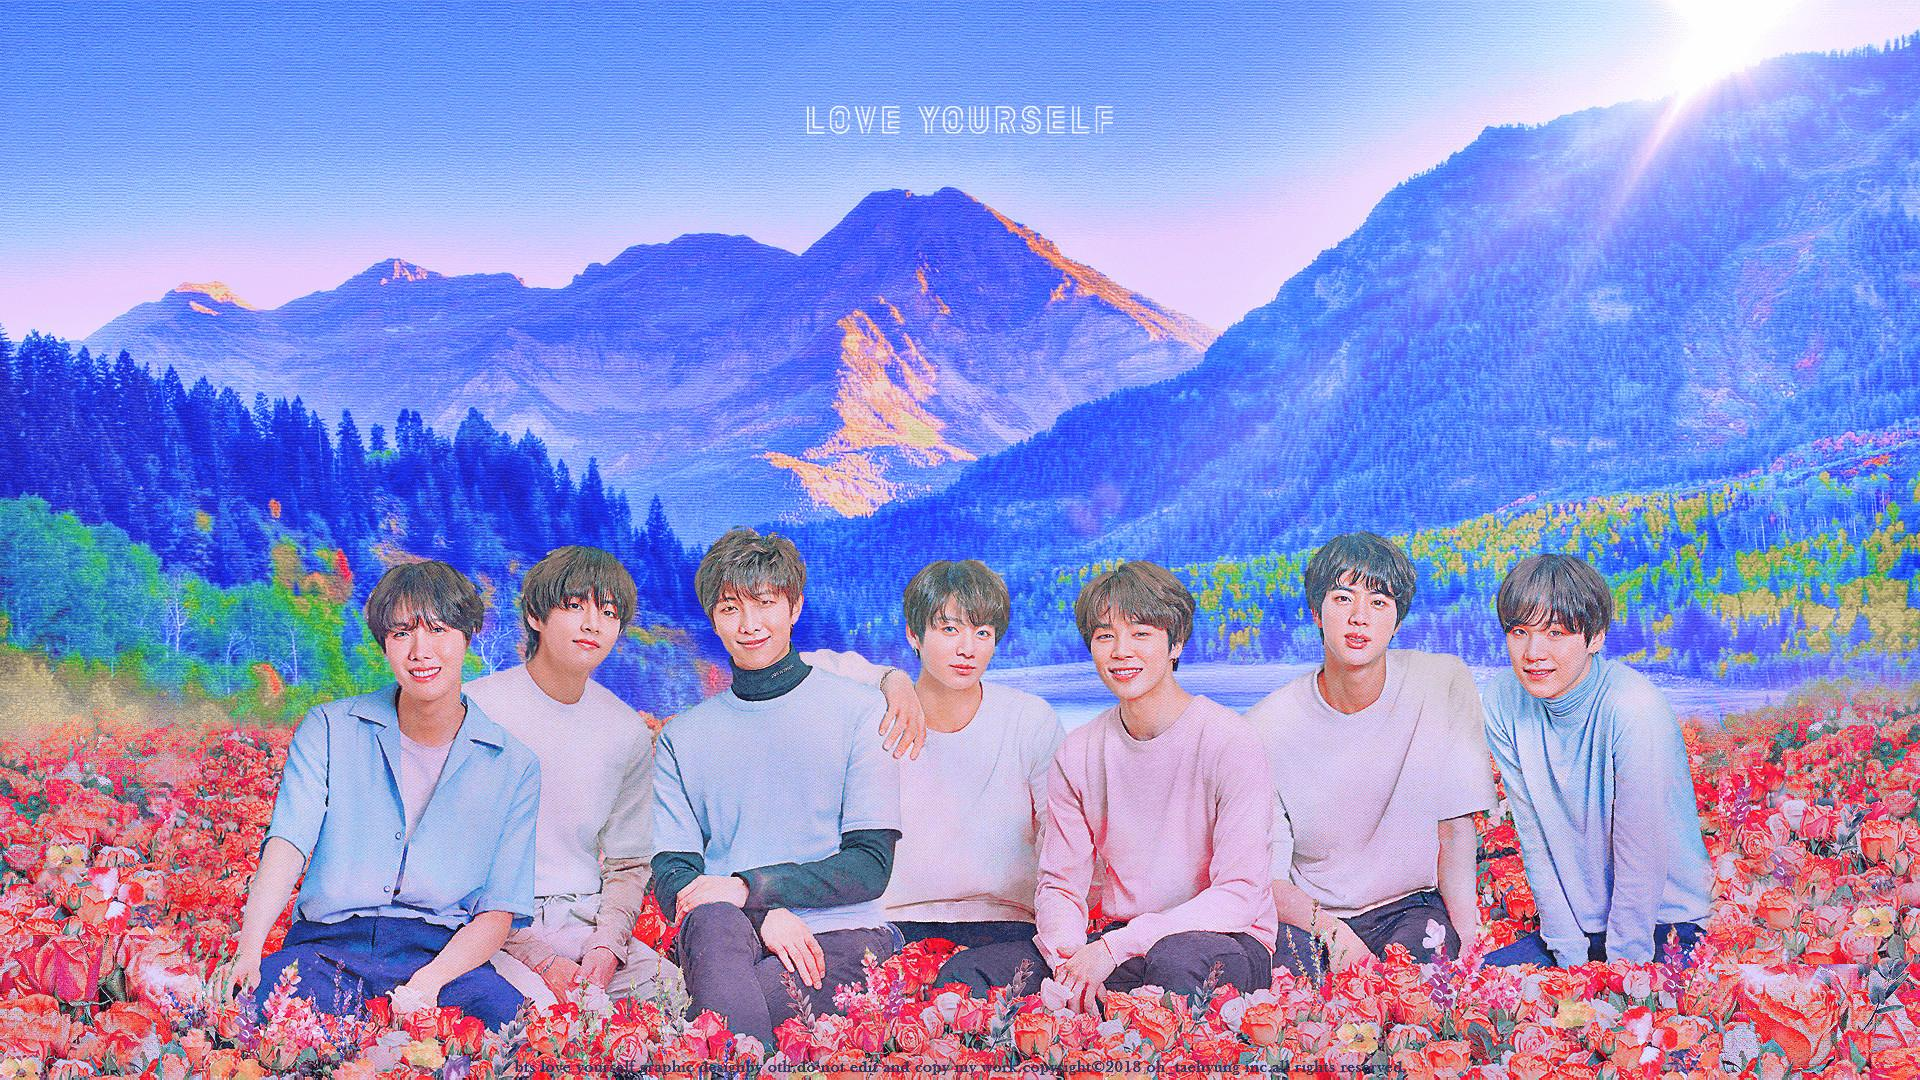 Download Bts Computer Wallpaper , High quality wallpaper for